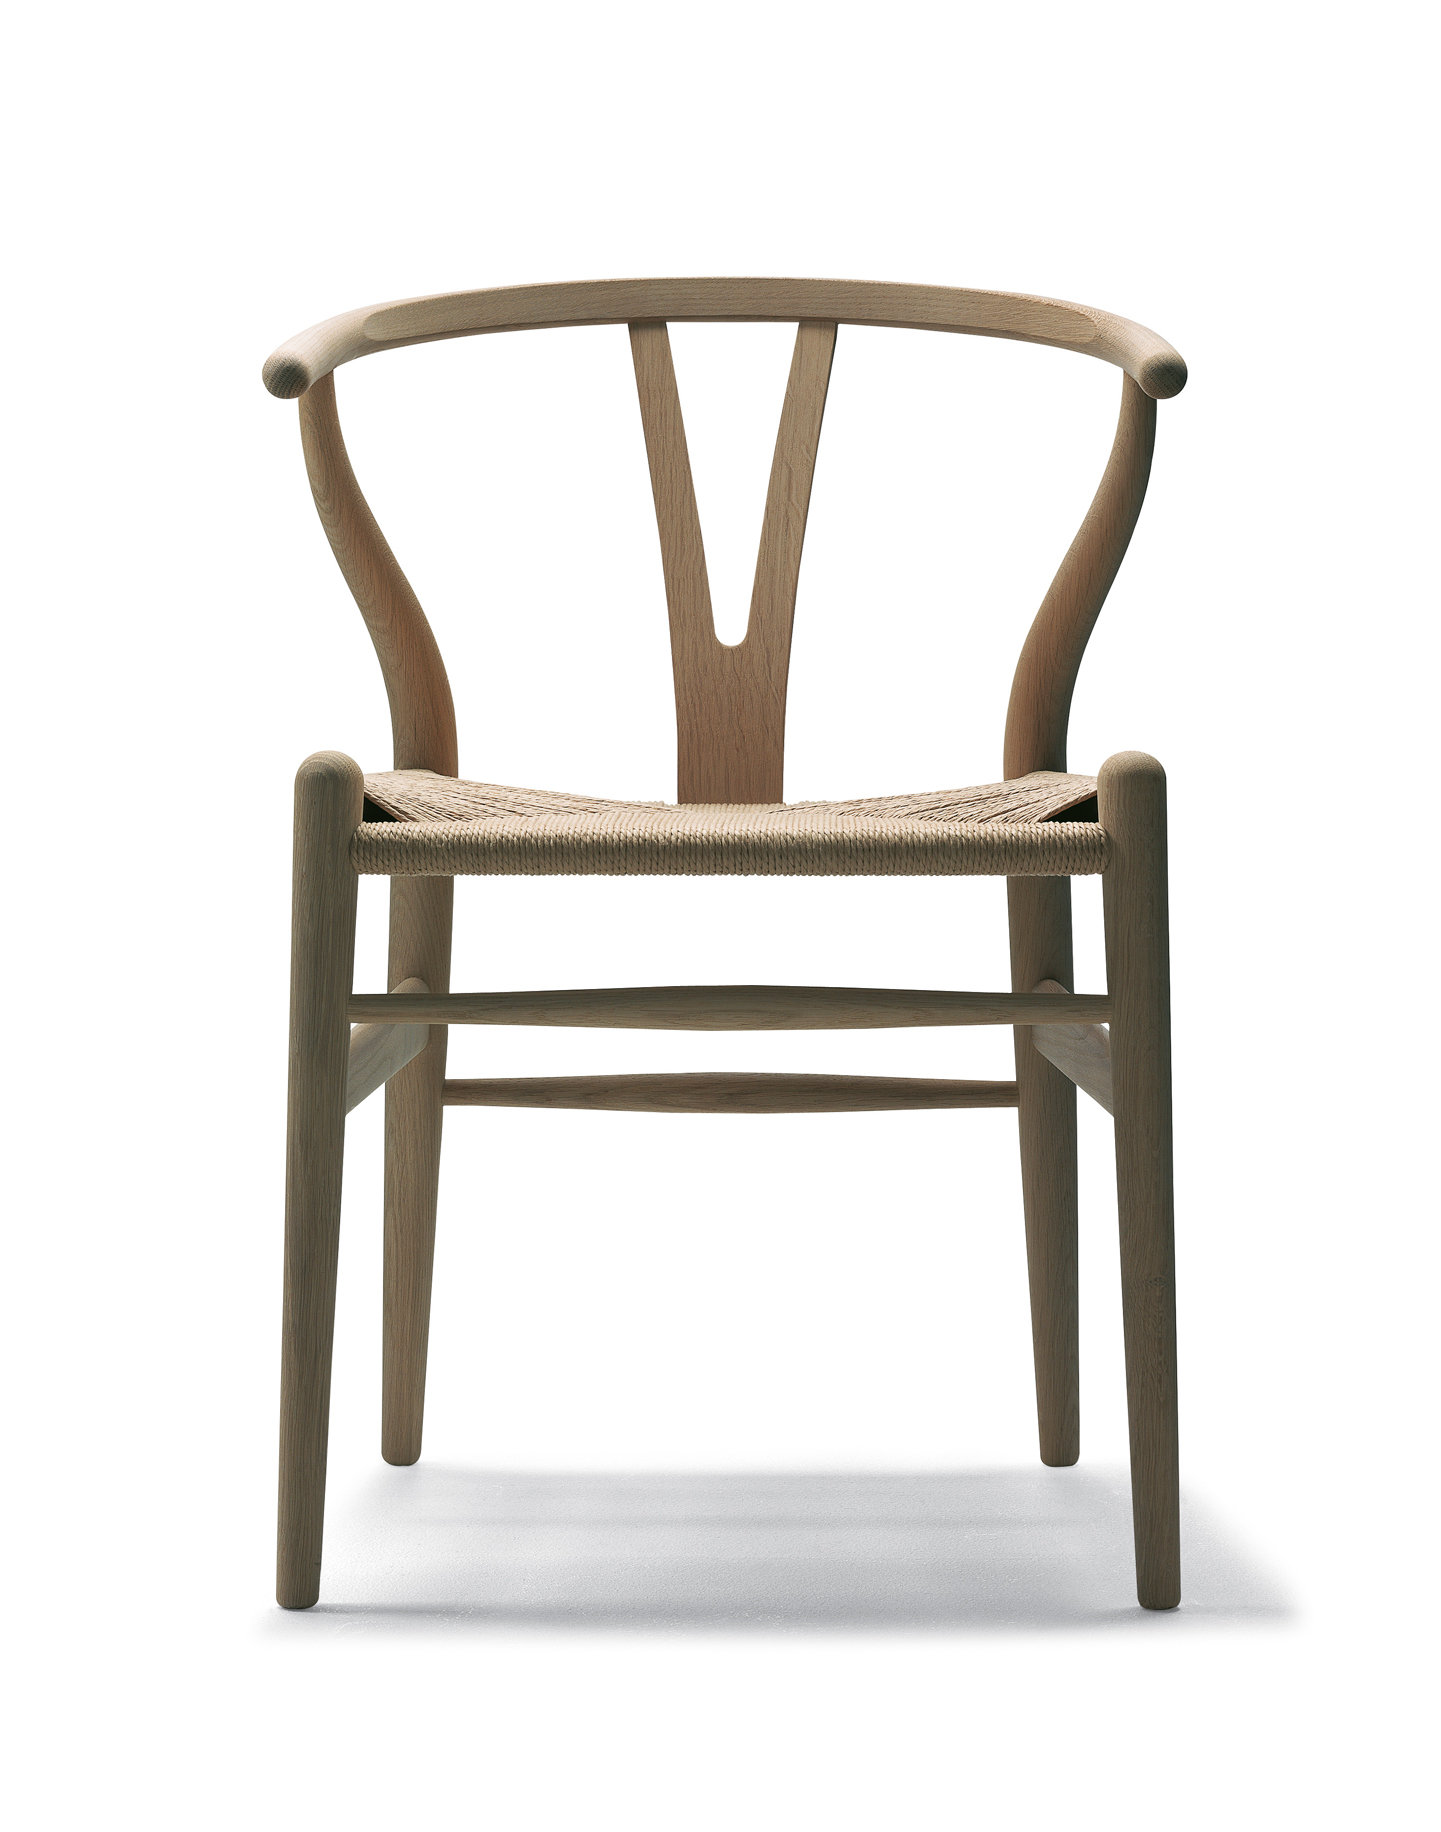 Wishbone Stuhl De Stijlvolle Klassieker Ontworpen Door De Ontwerper Hans Wegner Is Nu Bekend Onder Drie Namen Ch24 Y Chair En Wishbone Chair Wishbone Staat In